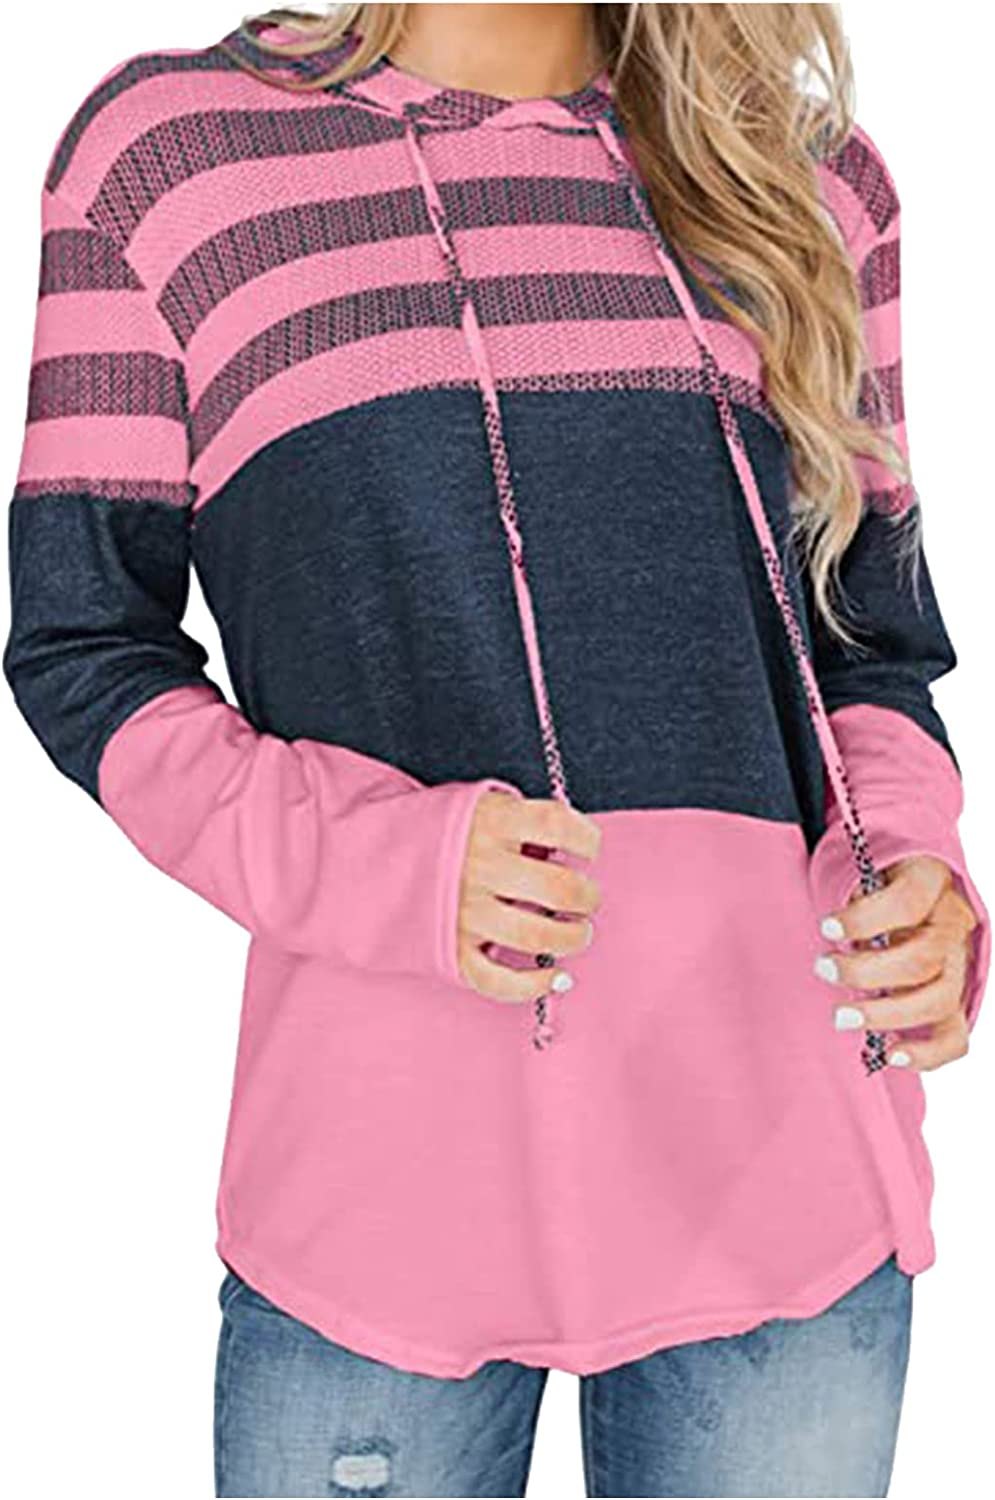 Women's Pullover Hoodies Casual Button Down Drawstring Long Sleeve Sweatshirts Fall Tops With Pocket